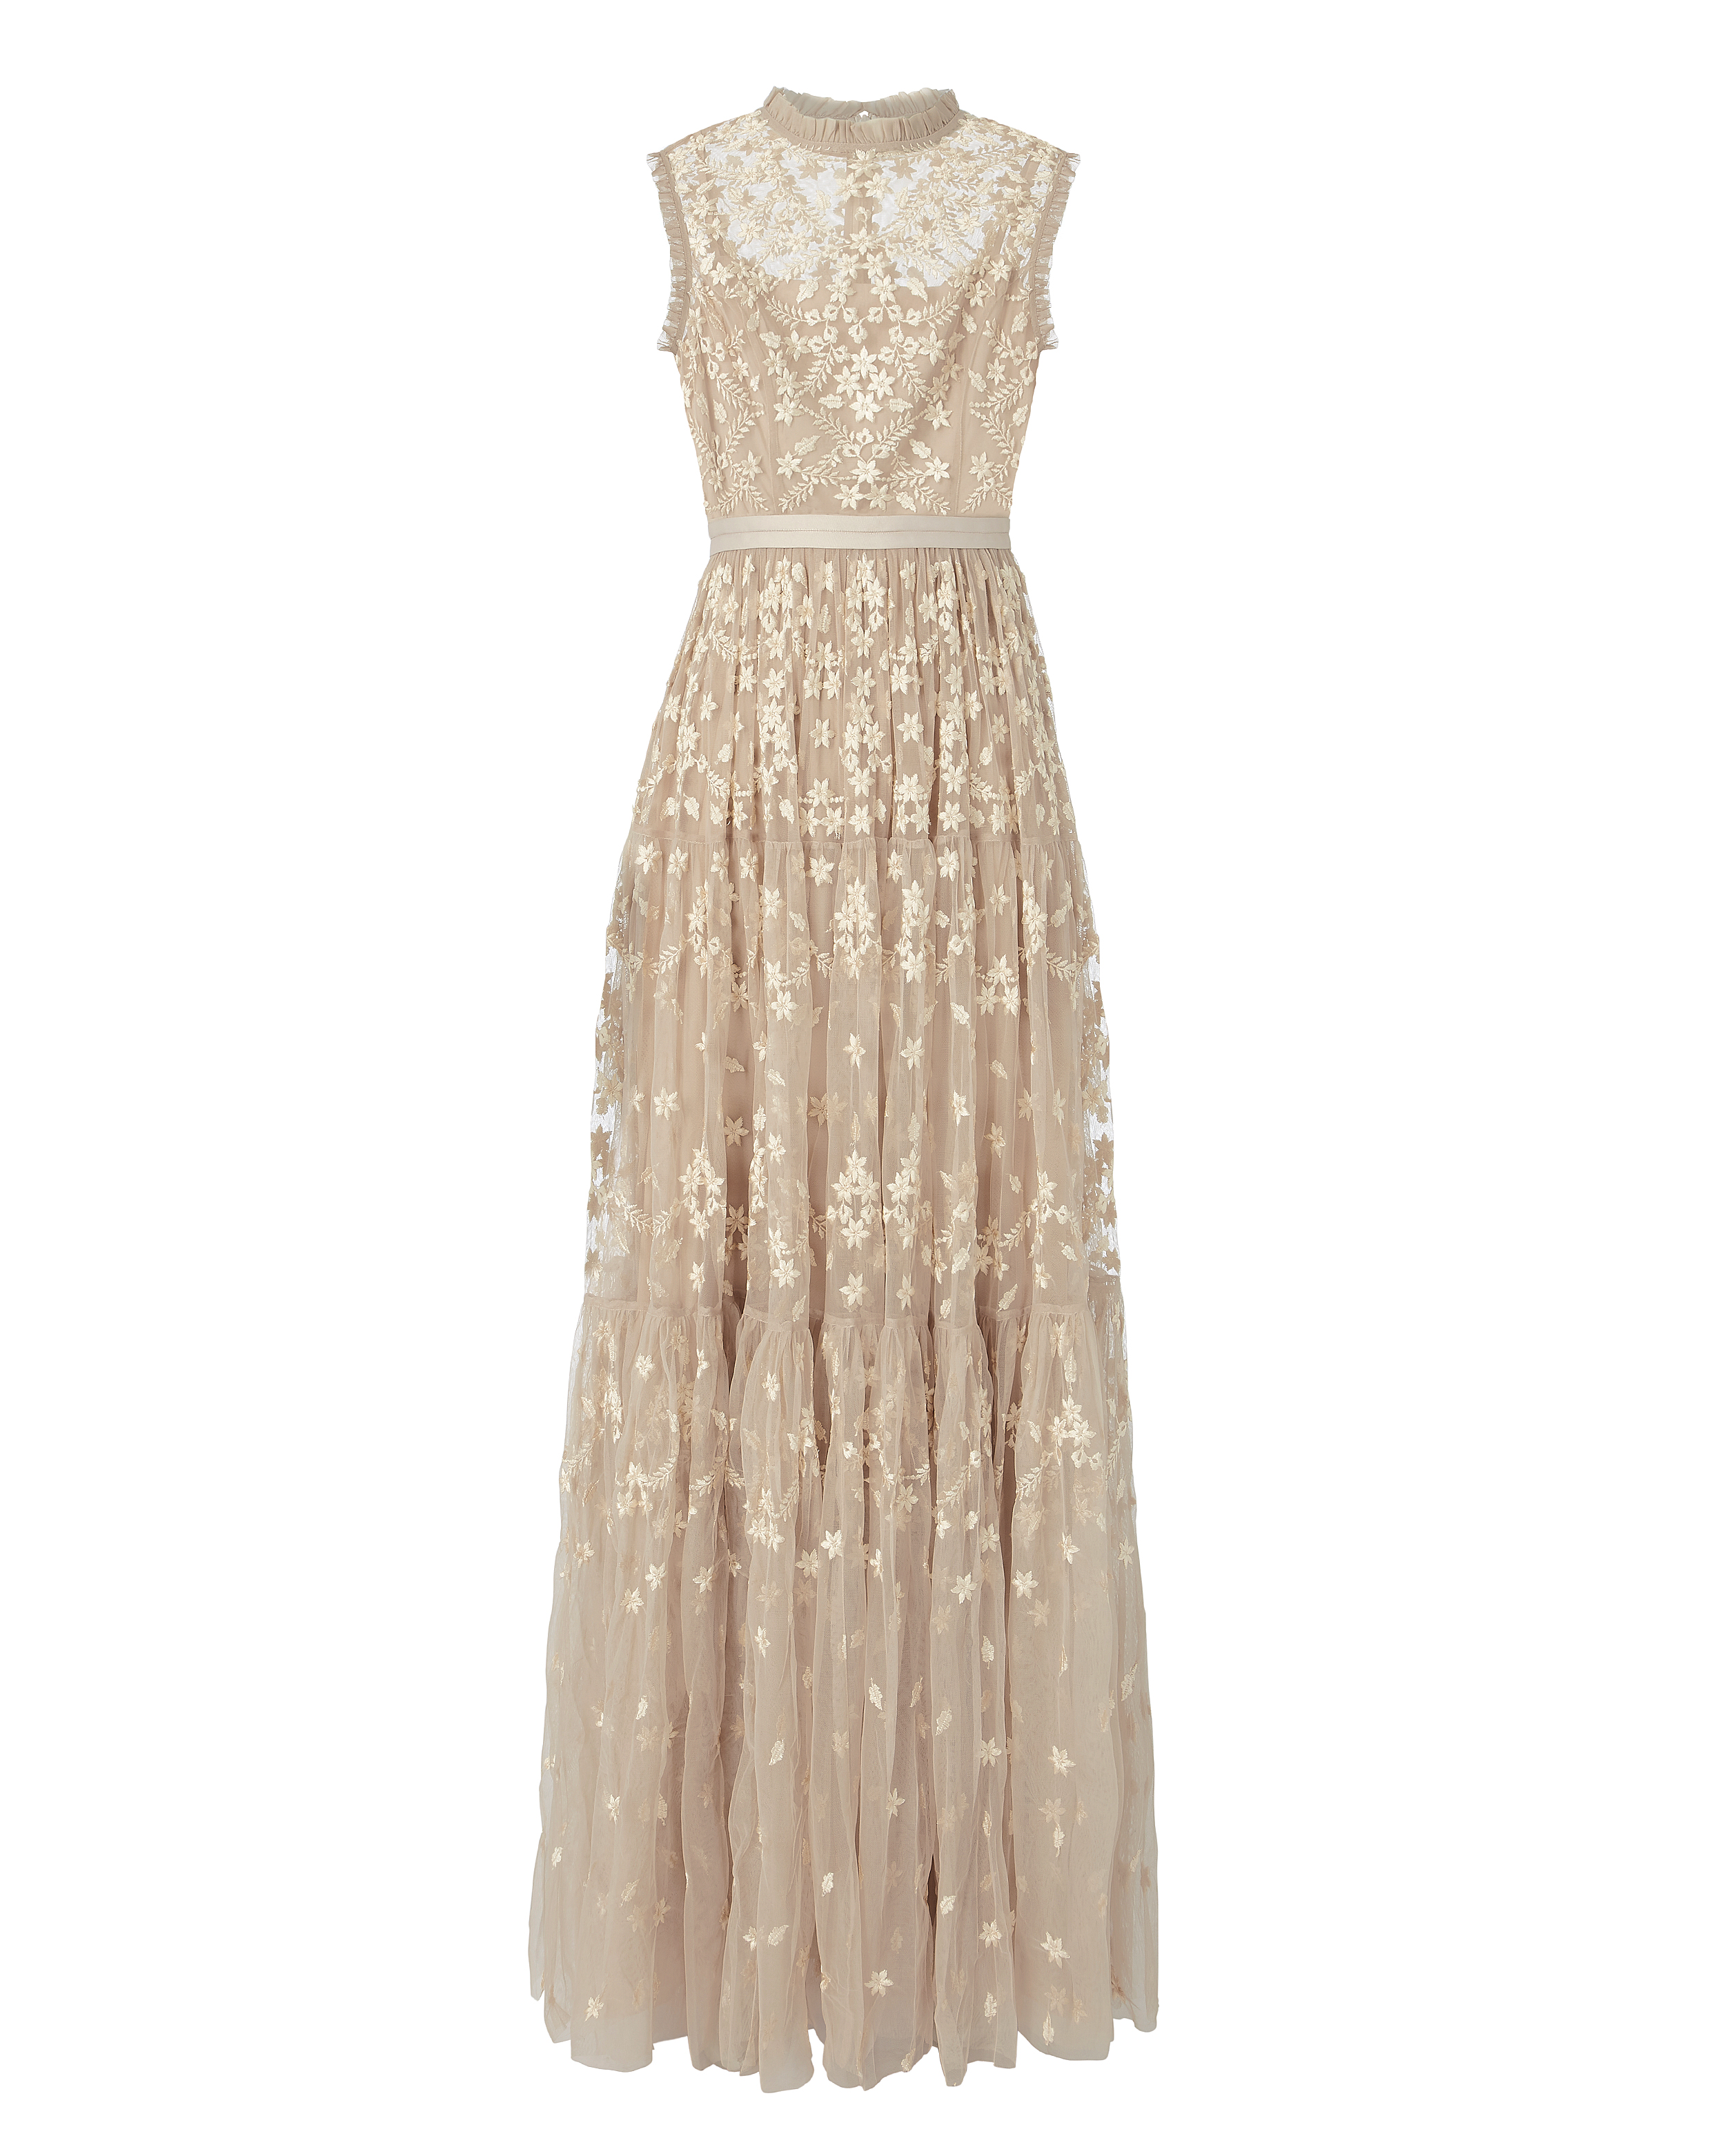 NEEDLE & THREAD Clover-Embellished Gown Beige | ModeSens